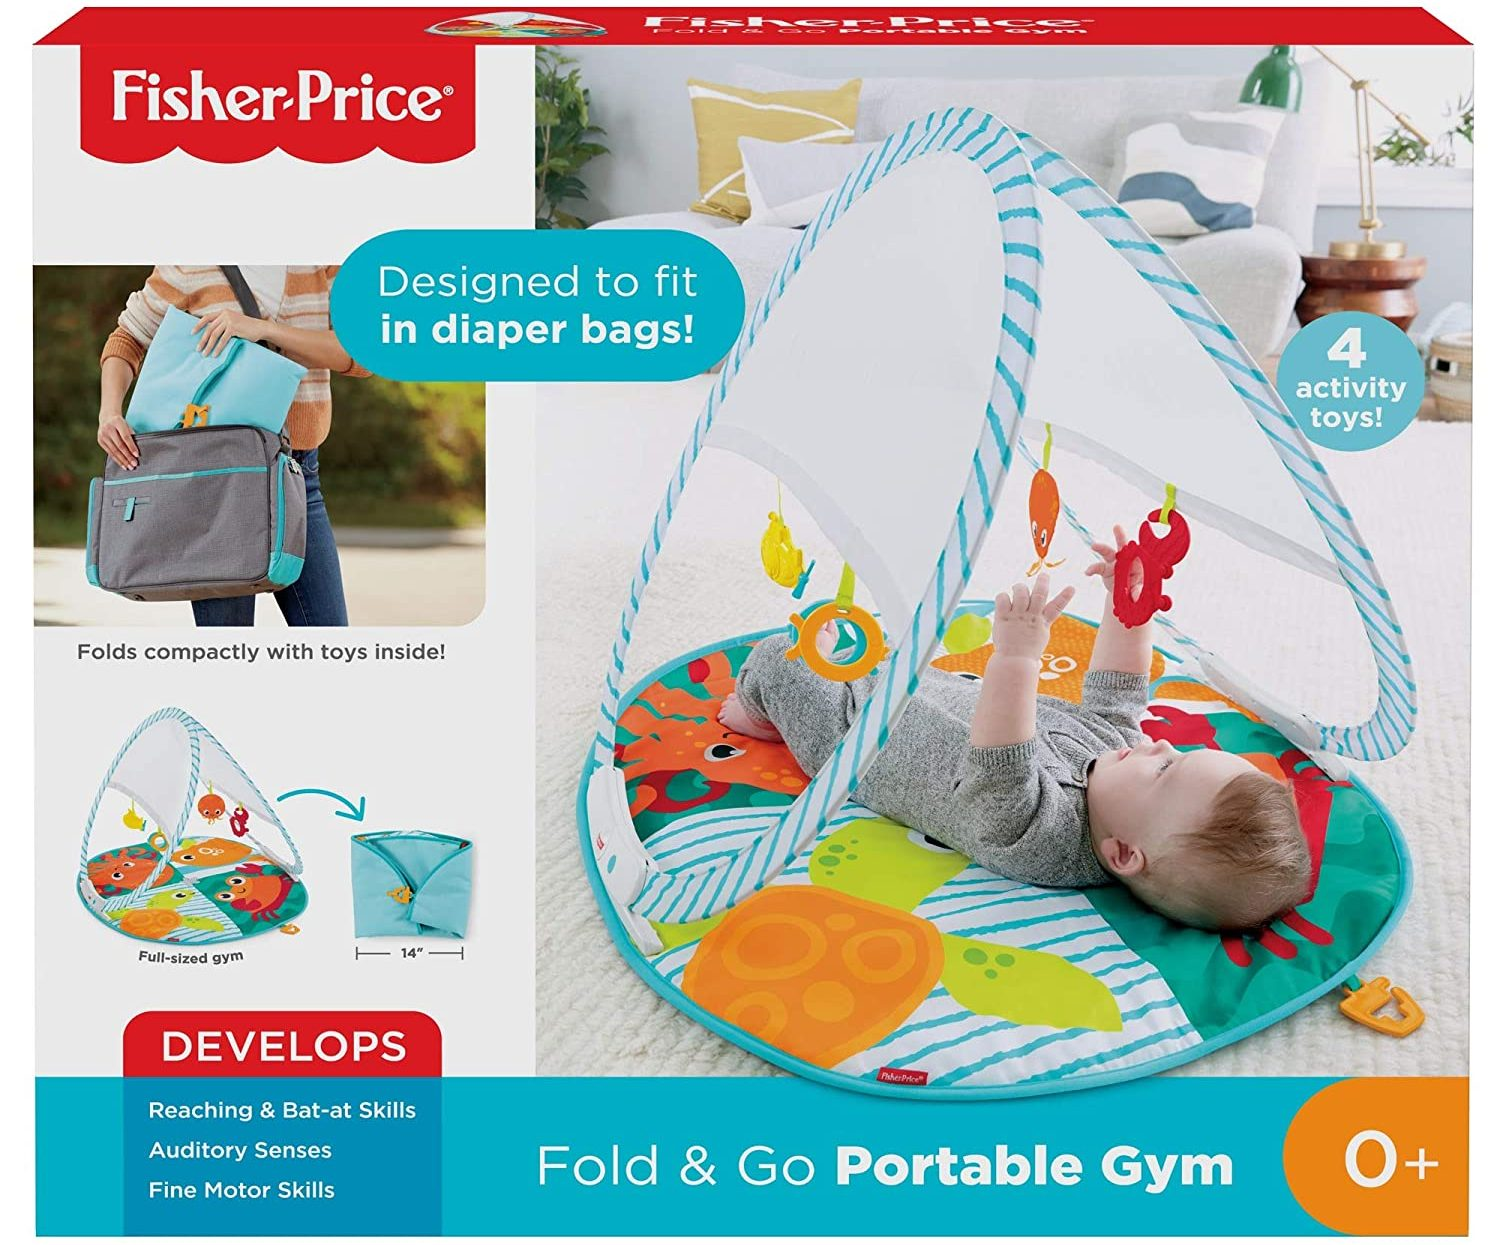 fold and go playmat in box